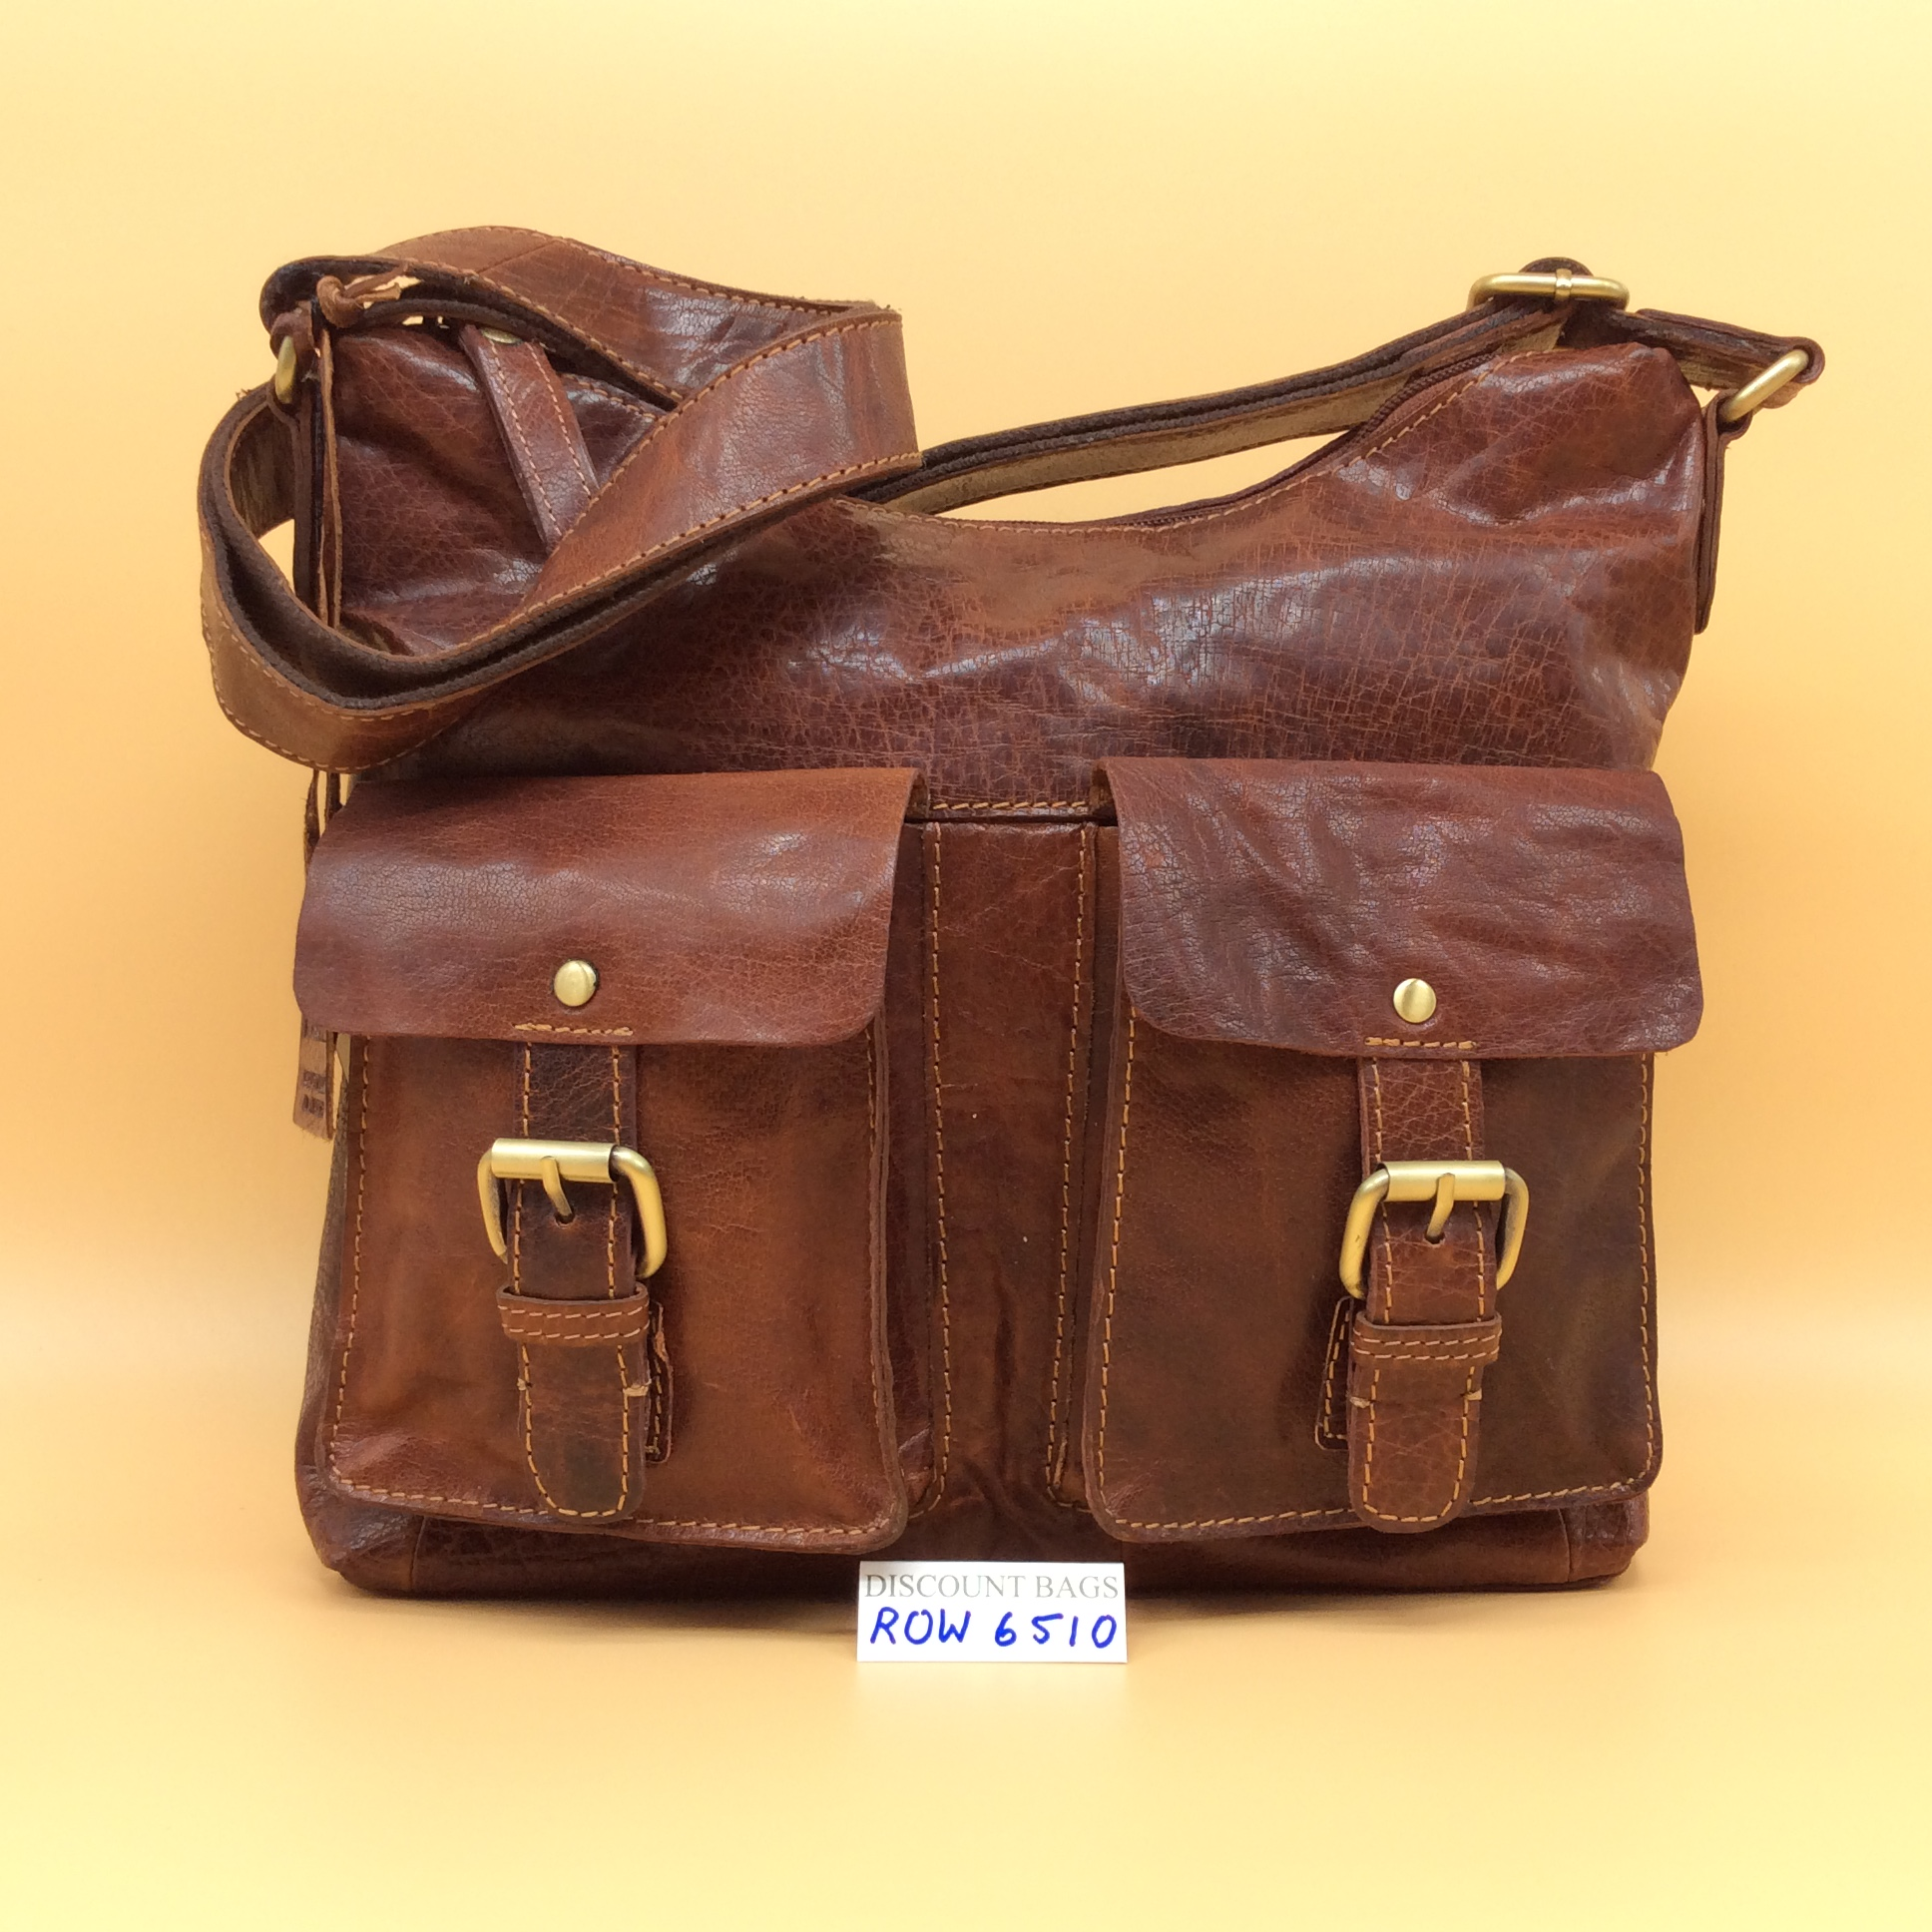 cd5a37b454 Rowallan Leather Bag. 6510. Cognac - Discount Bags and Leather Goods